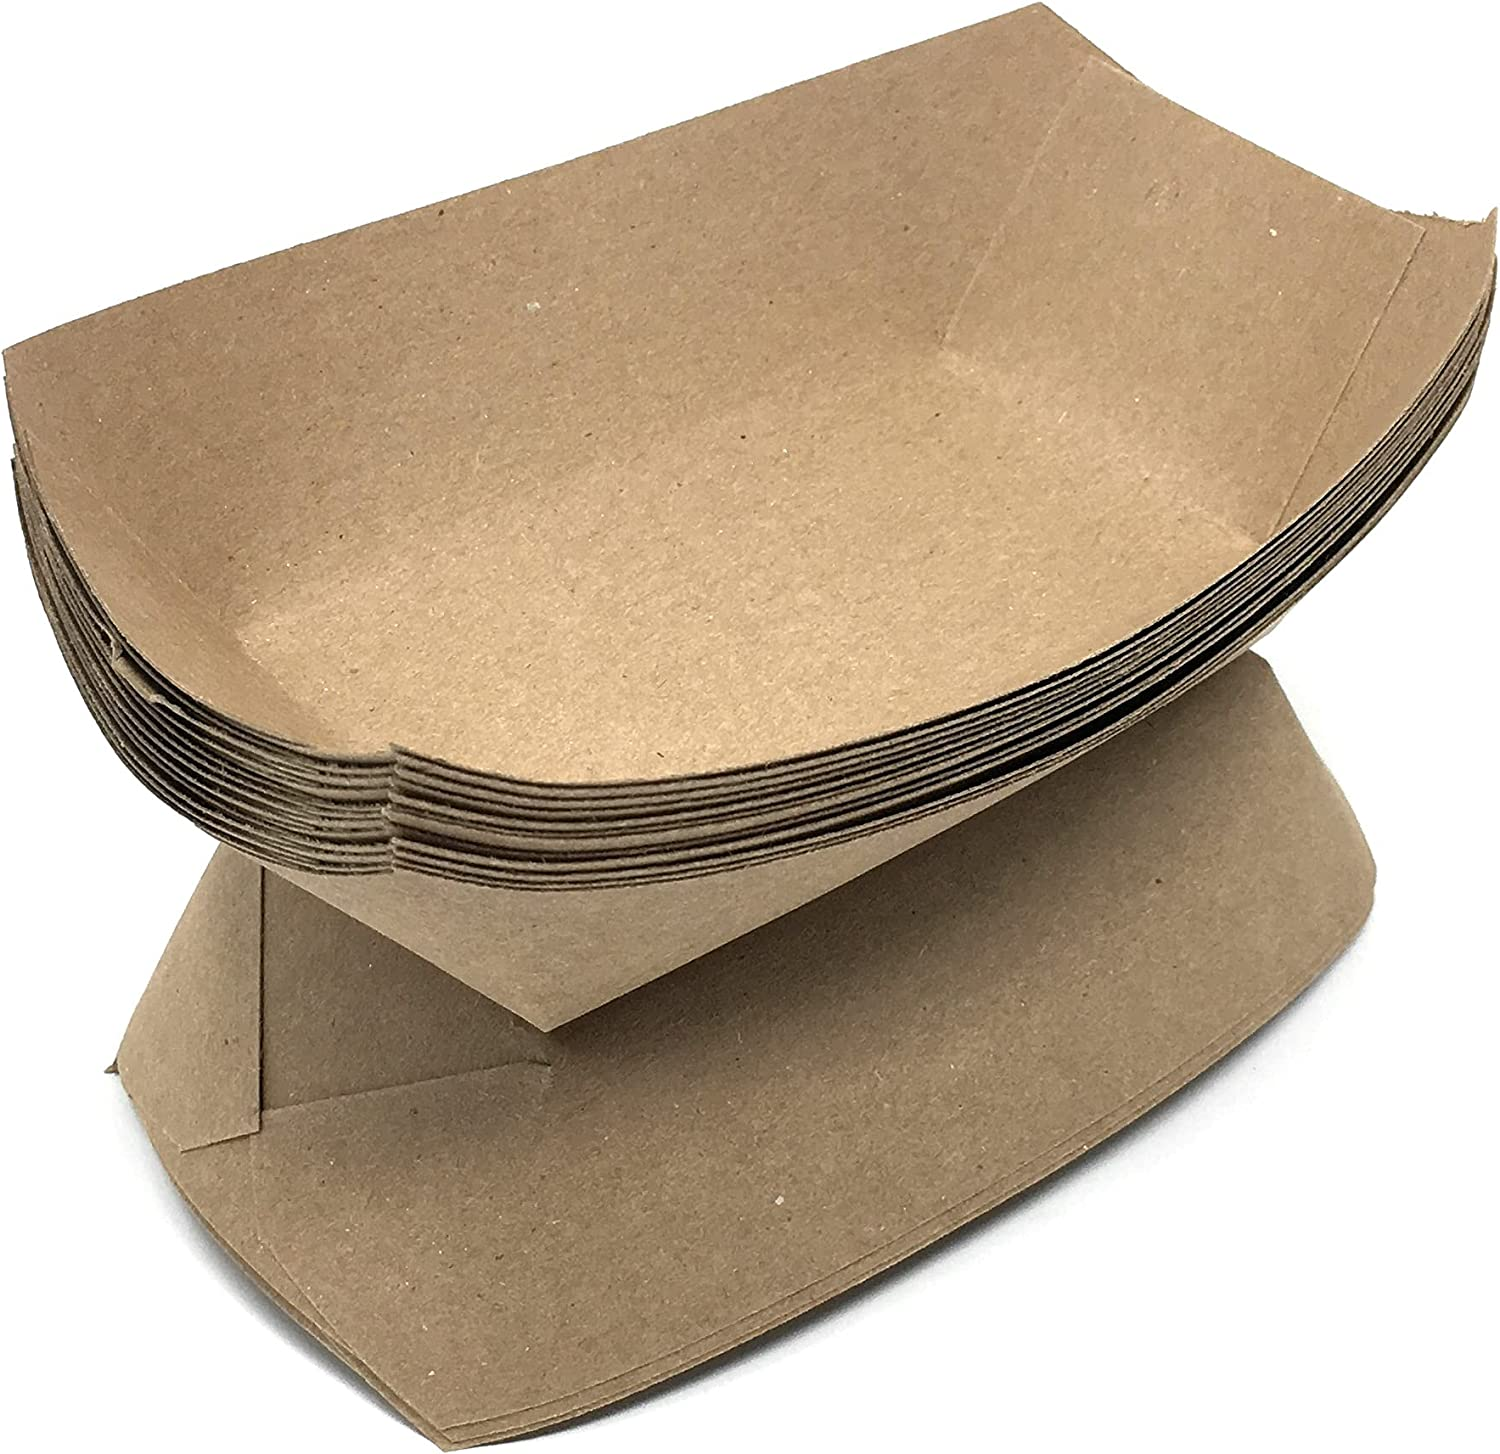 Mr. Miracle Kraft Paper Food Tray. 1/4 - Pound Size. Pack of 100. Disposable, Recyclable and Fully Biodegradable. Made in USA